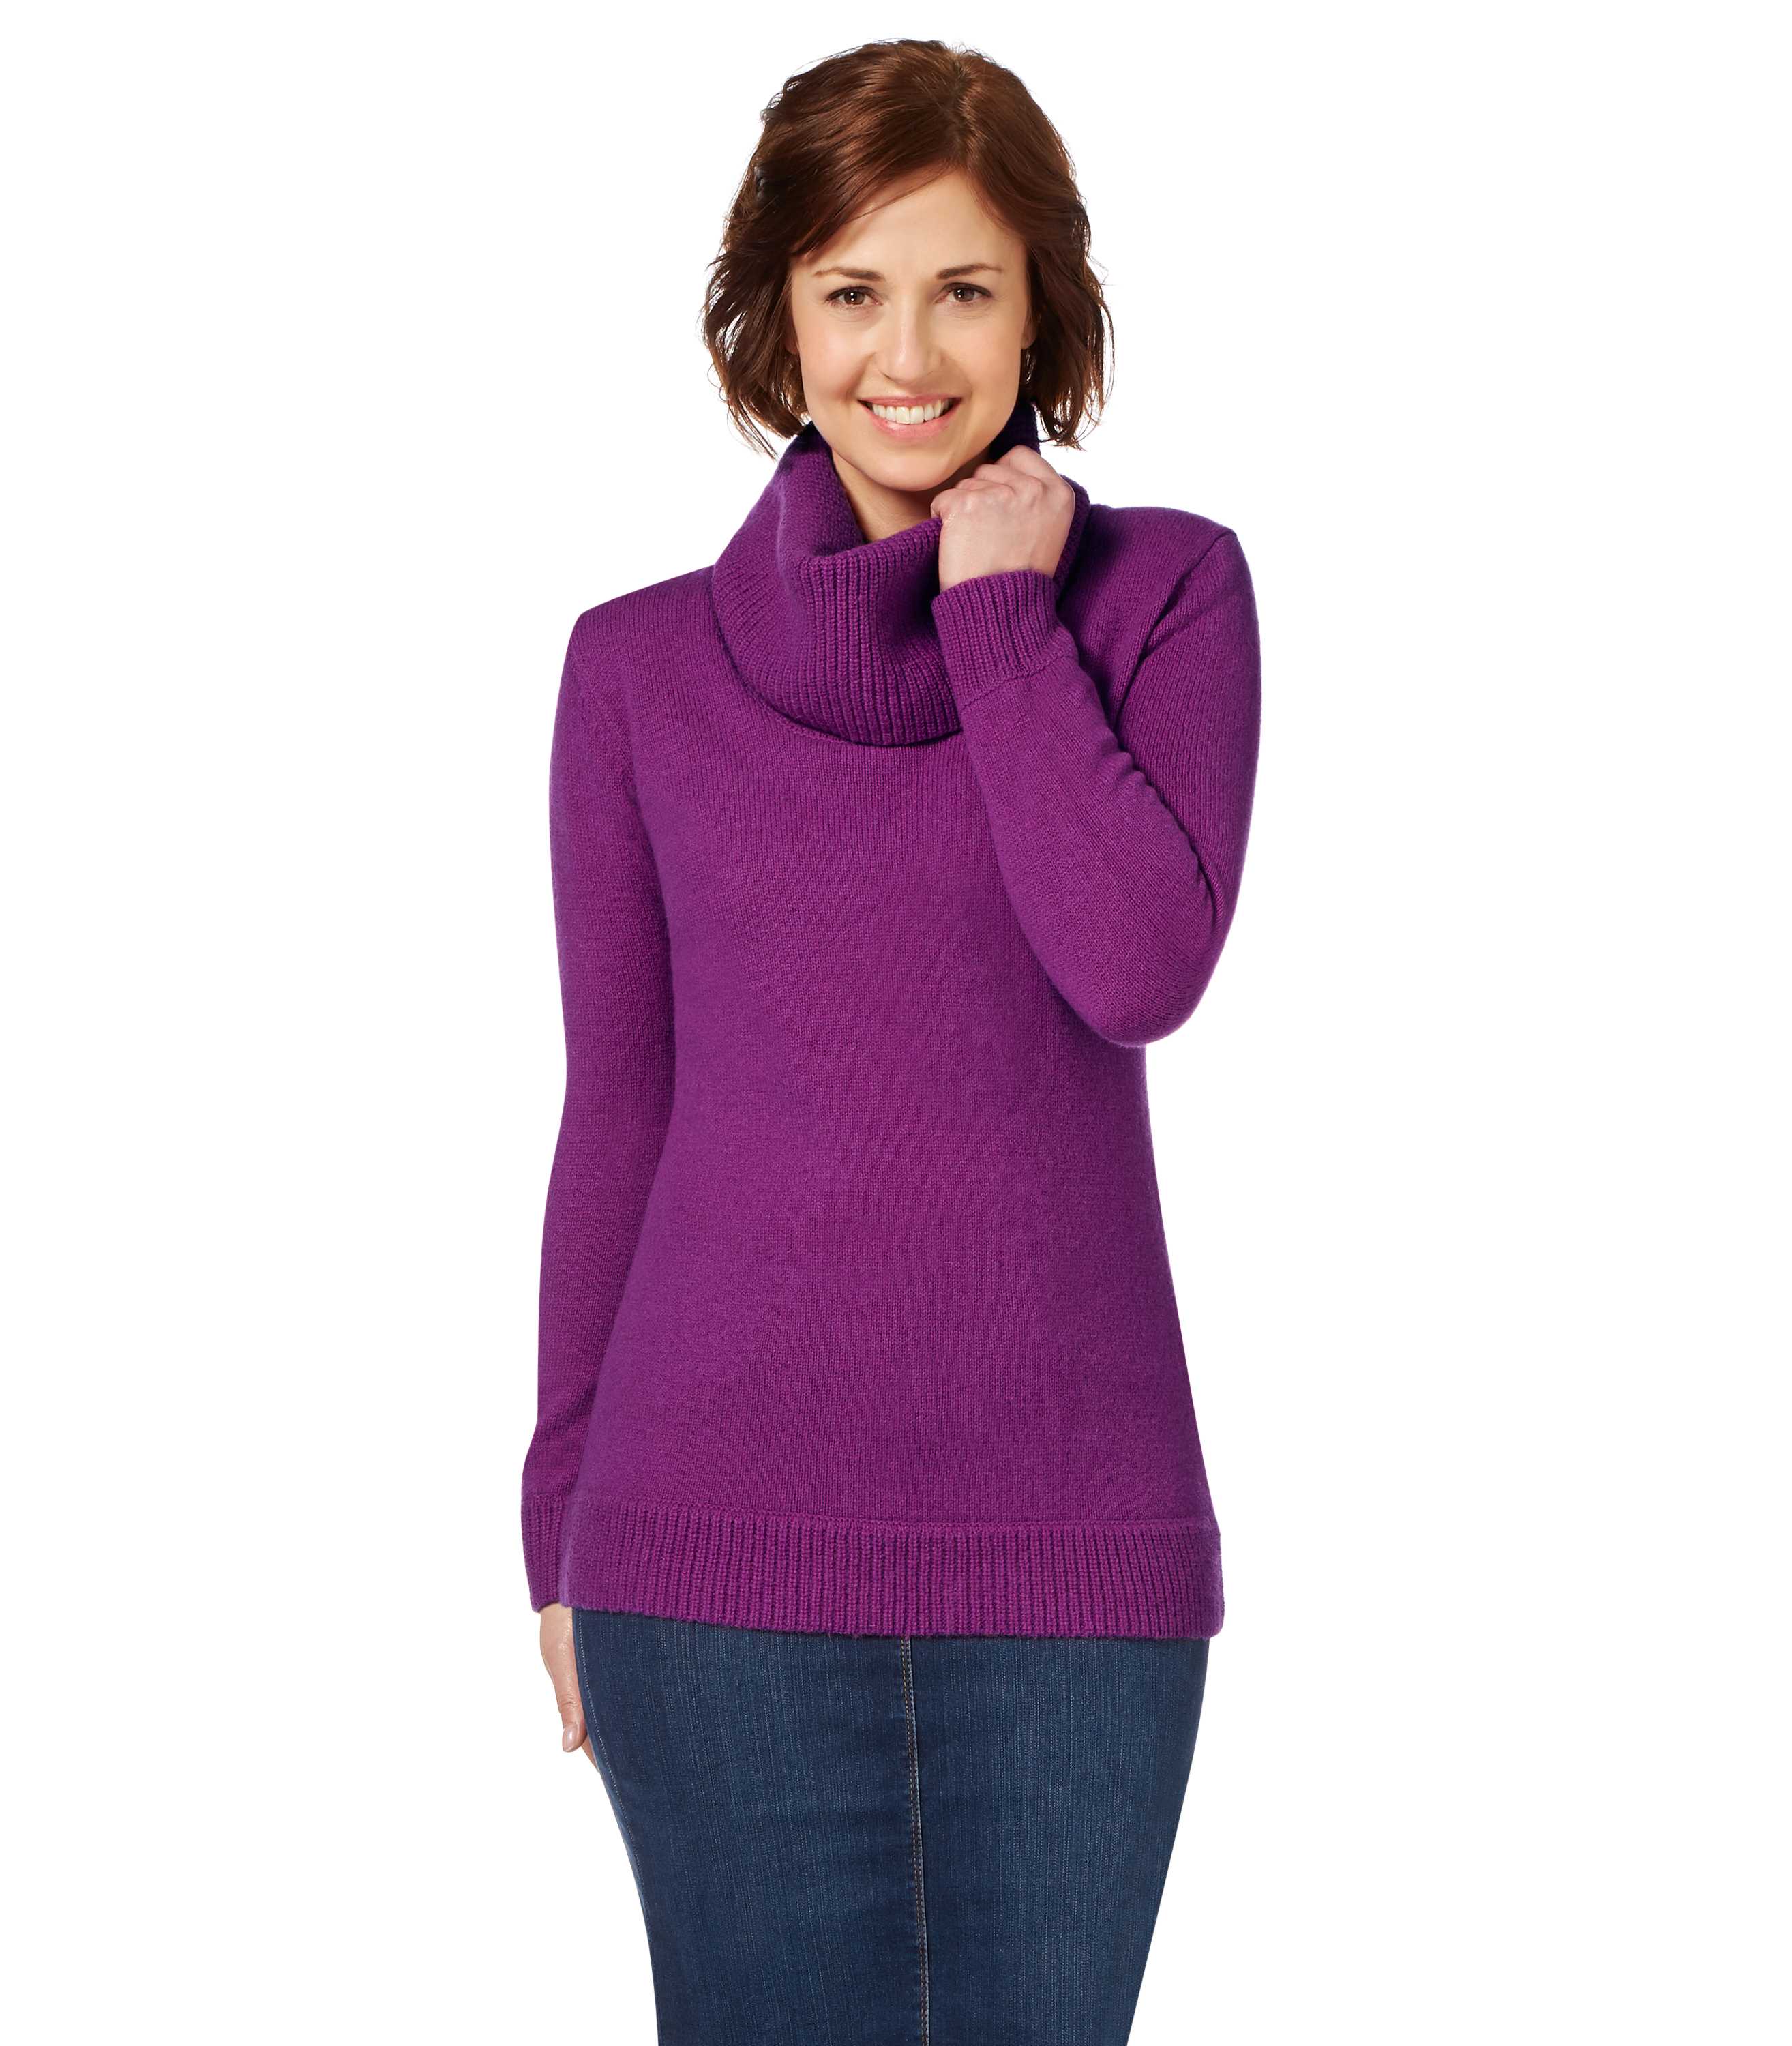 Find great deals on eBay for womens cowl neck sweaters. Shop with confidence.